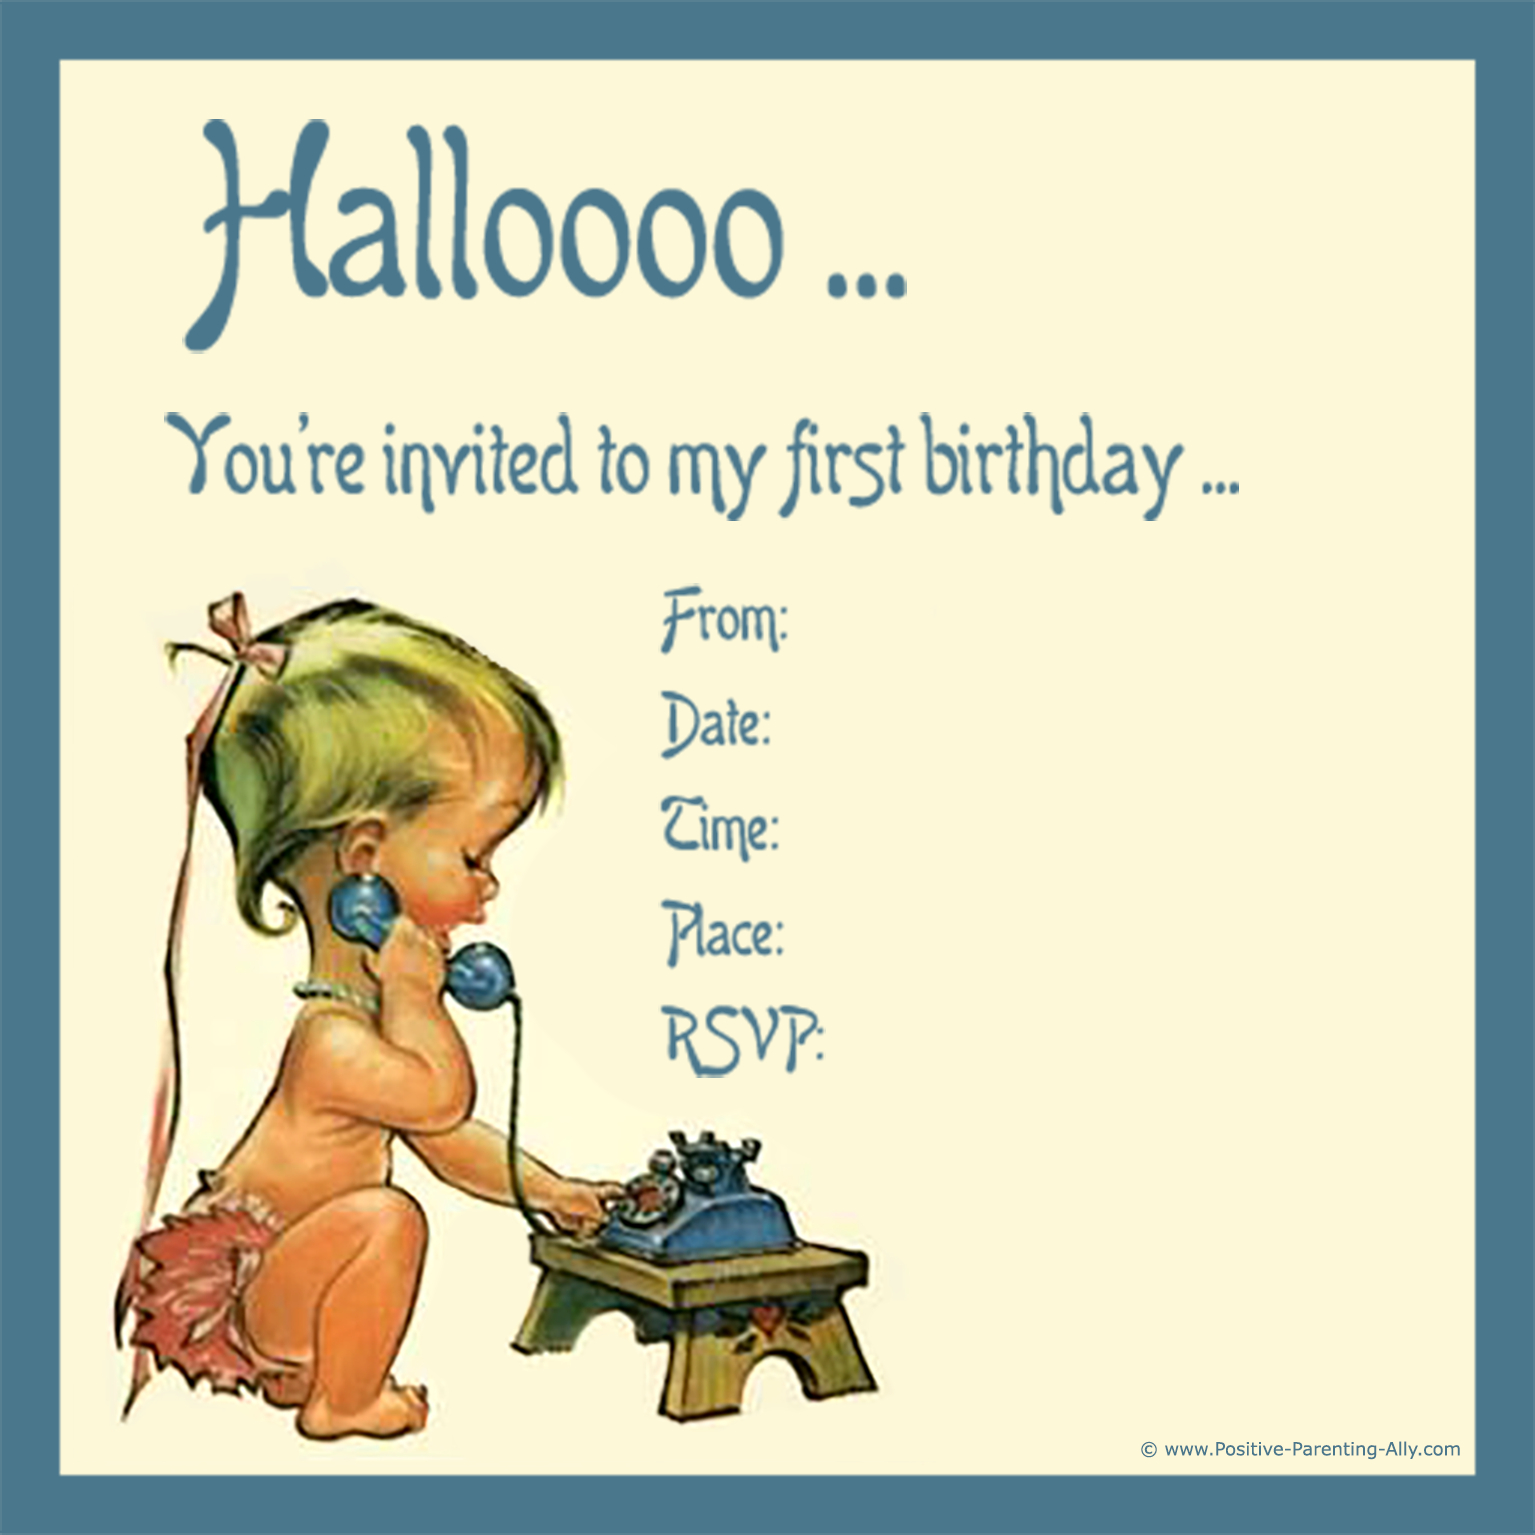 Old vintage 1st birthday invitation to print with the custest little baby on the phone.